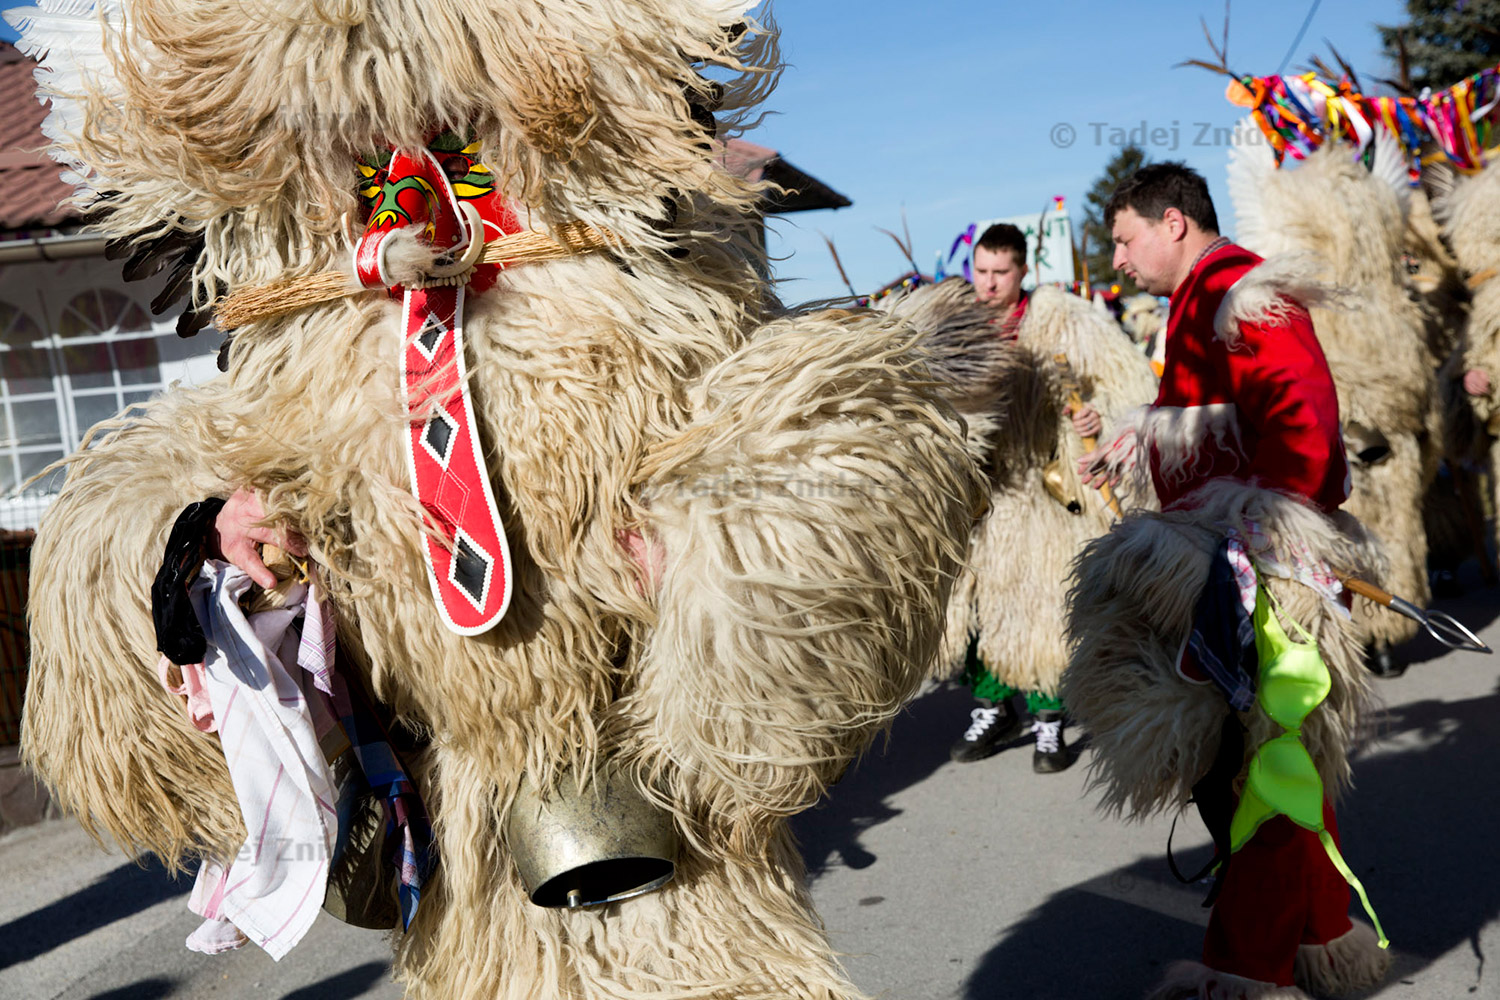 Korant during Fasenk in Zabovci. Koranti jump and twist, and cow-bells ring. It's a loud celebration!